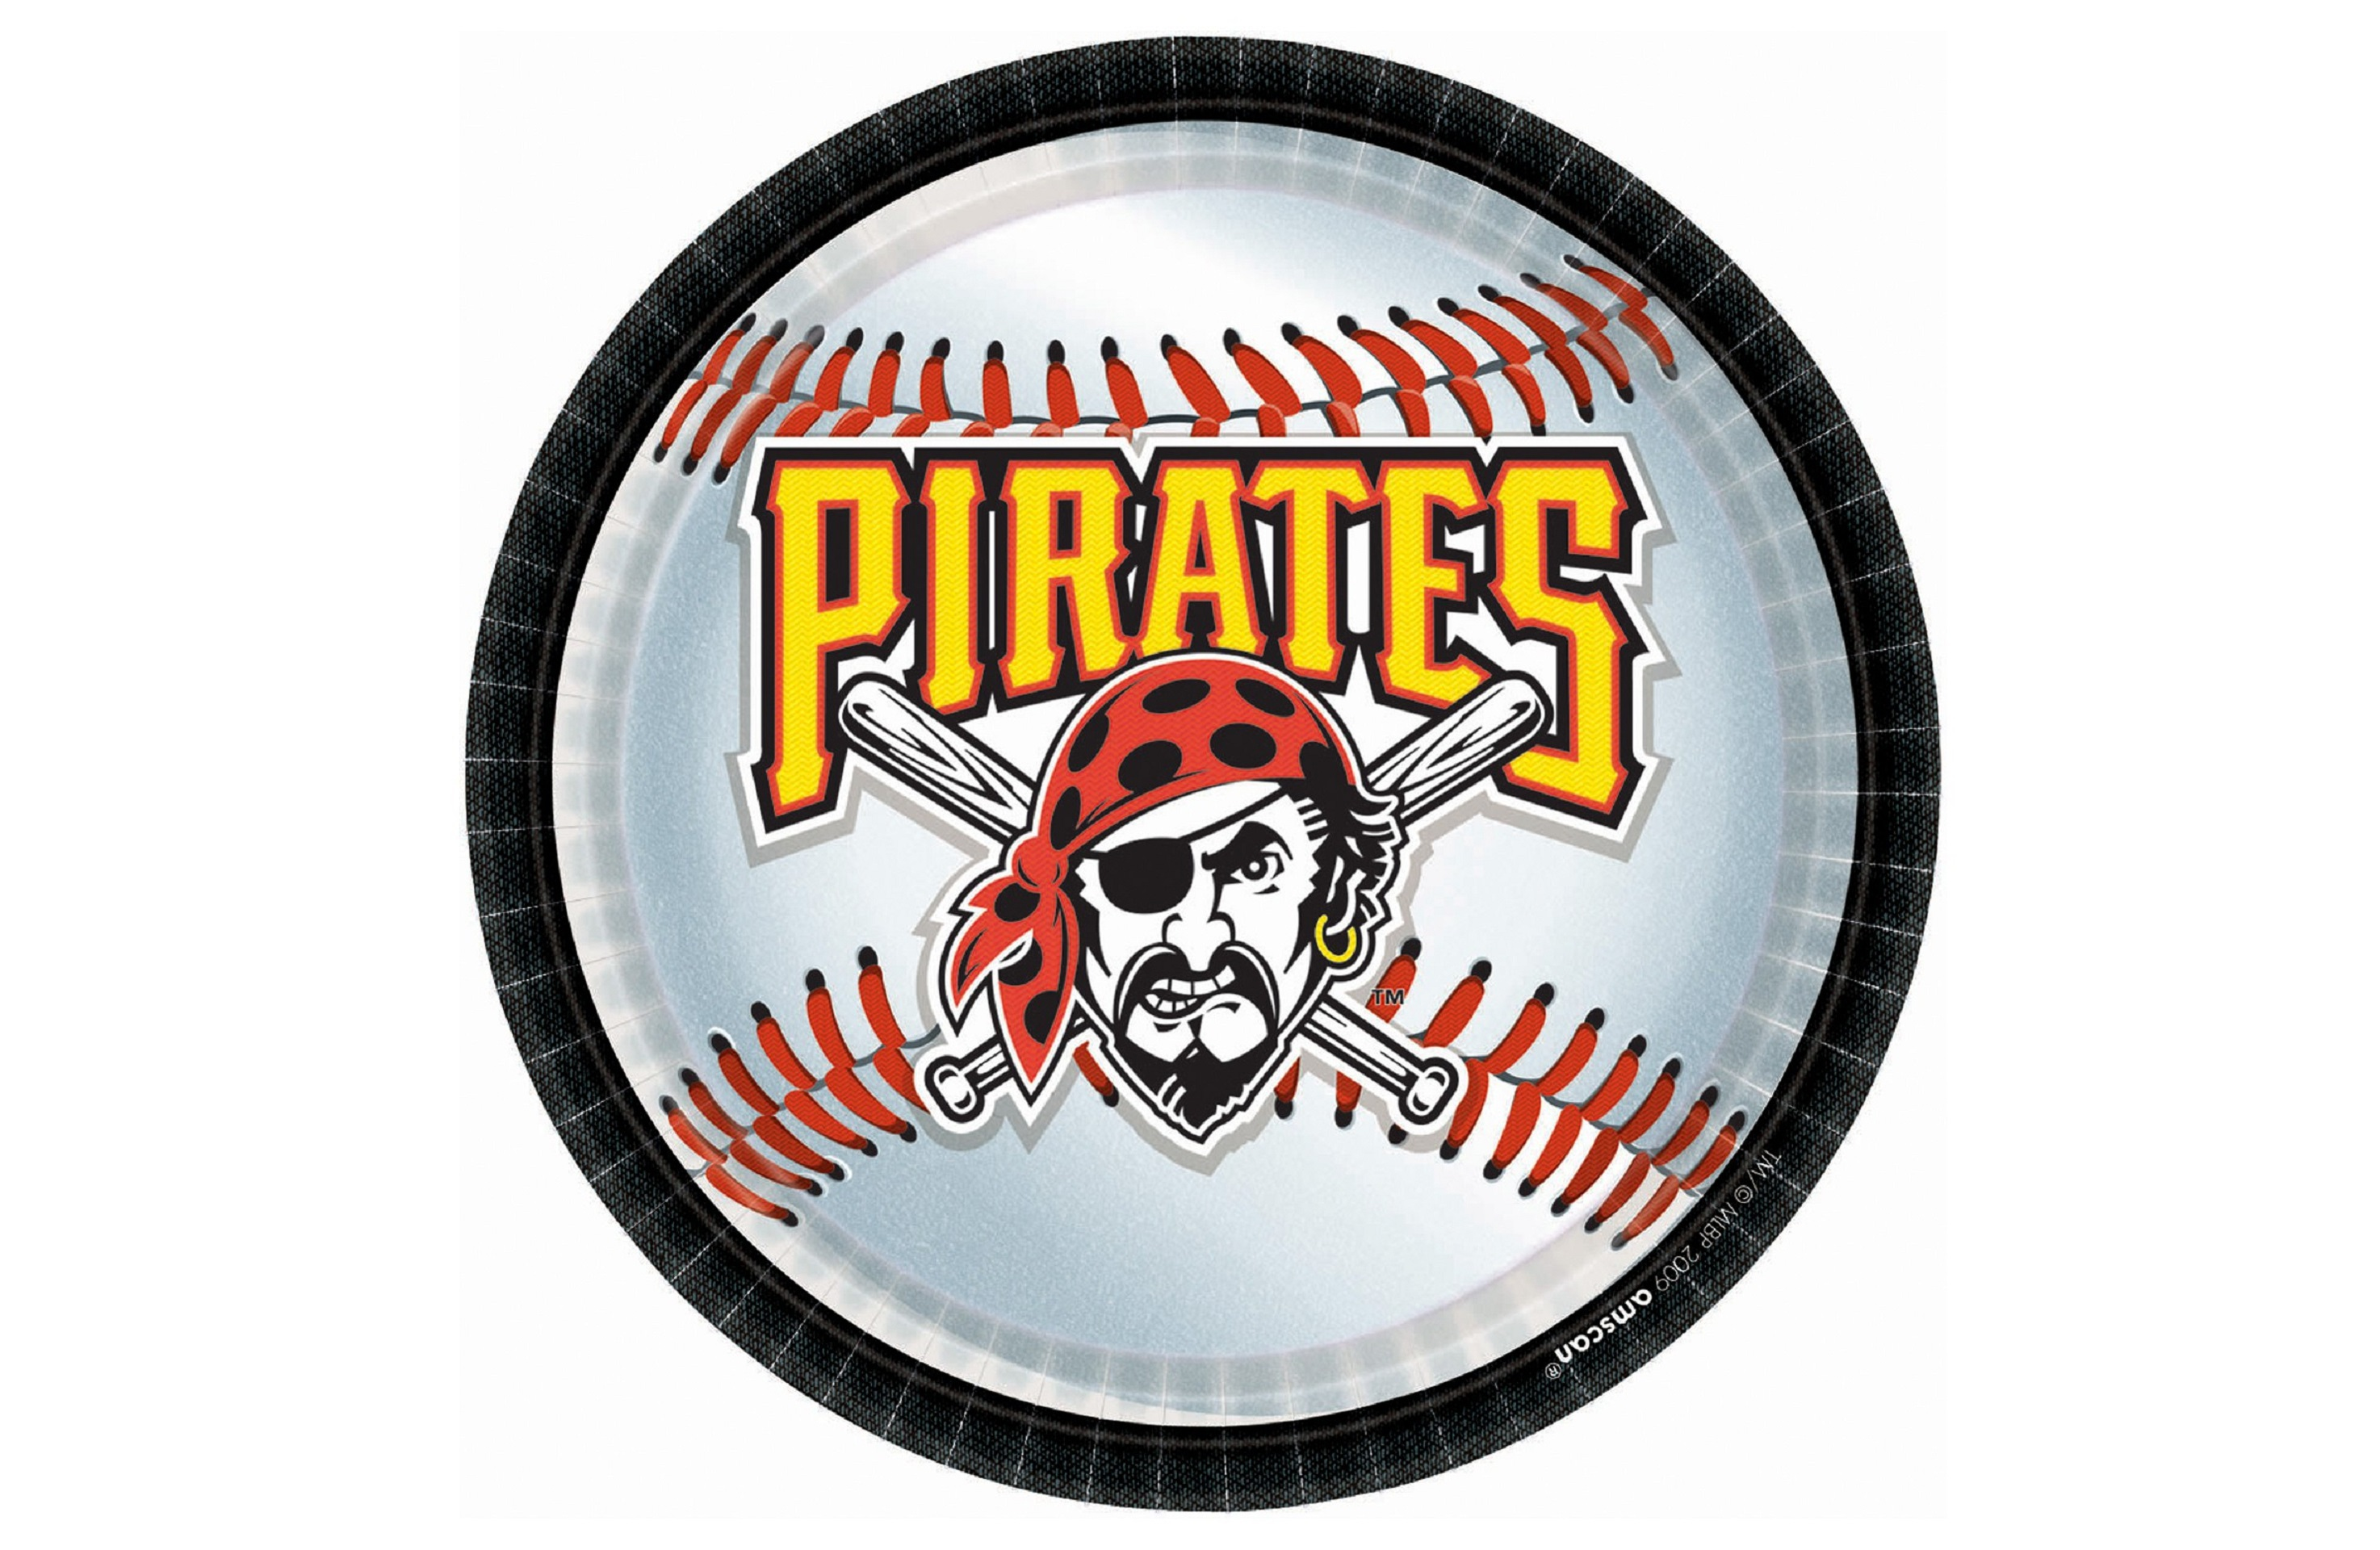 Pittsburgh Pirates 4k